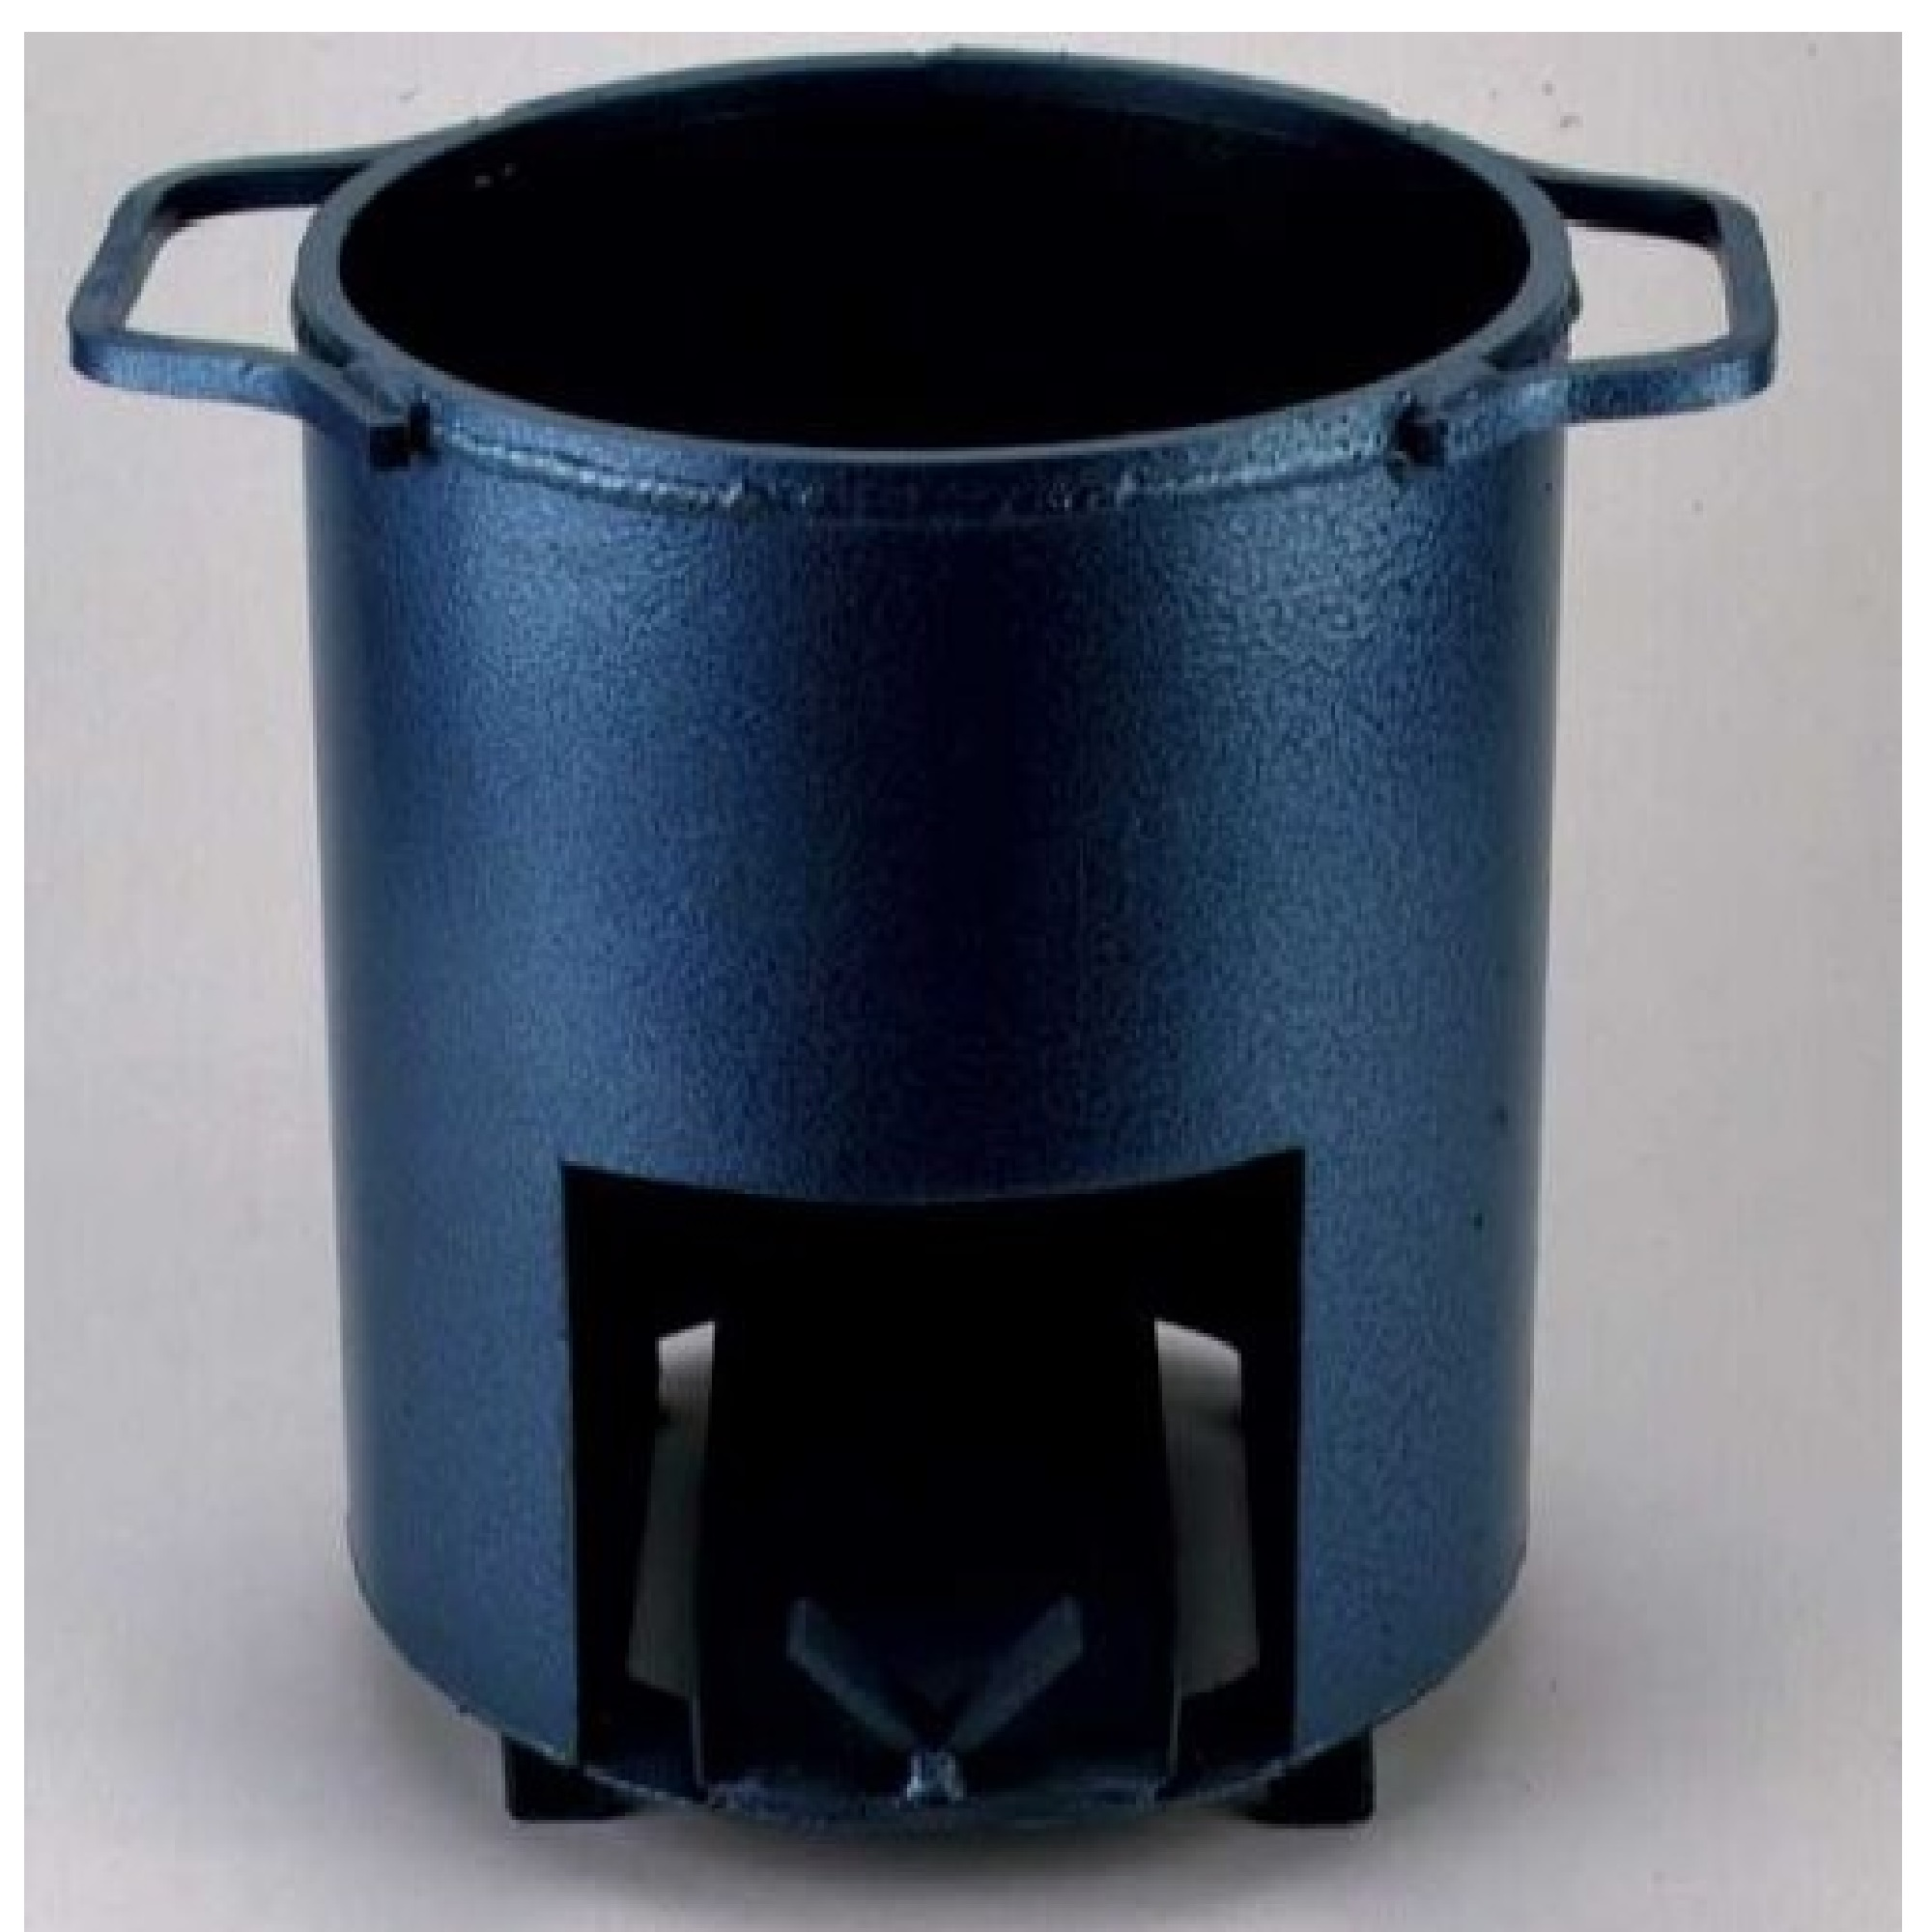 Metal asphalt bucket heater on a grey background